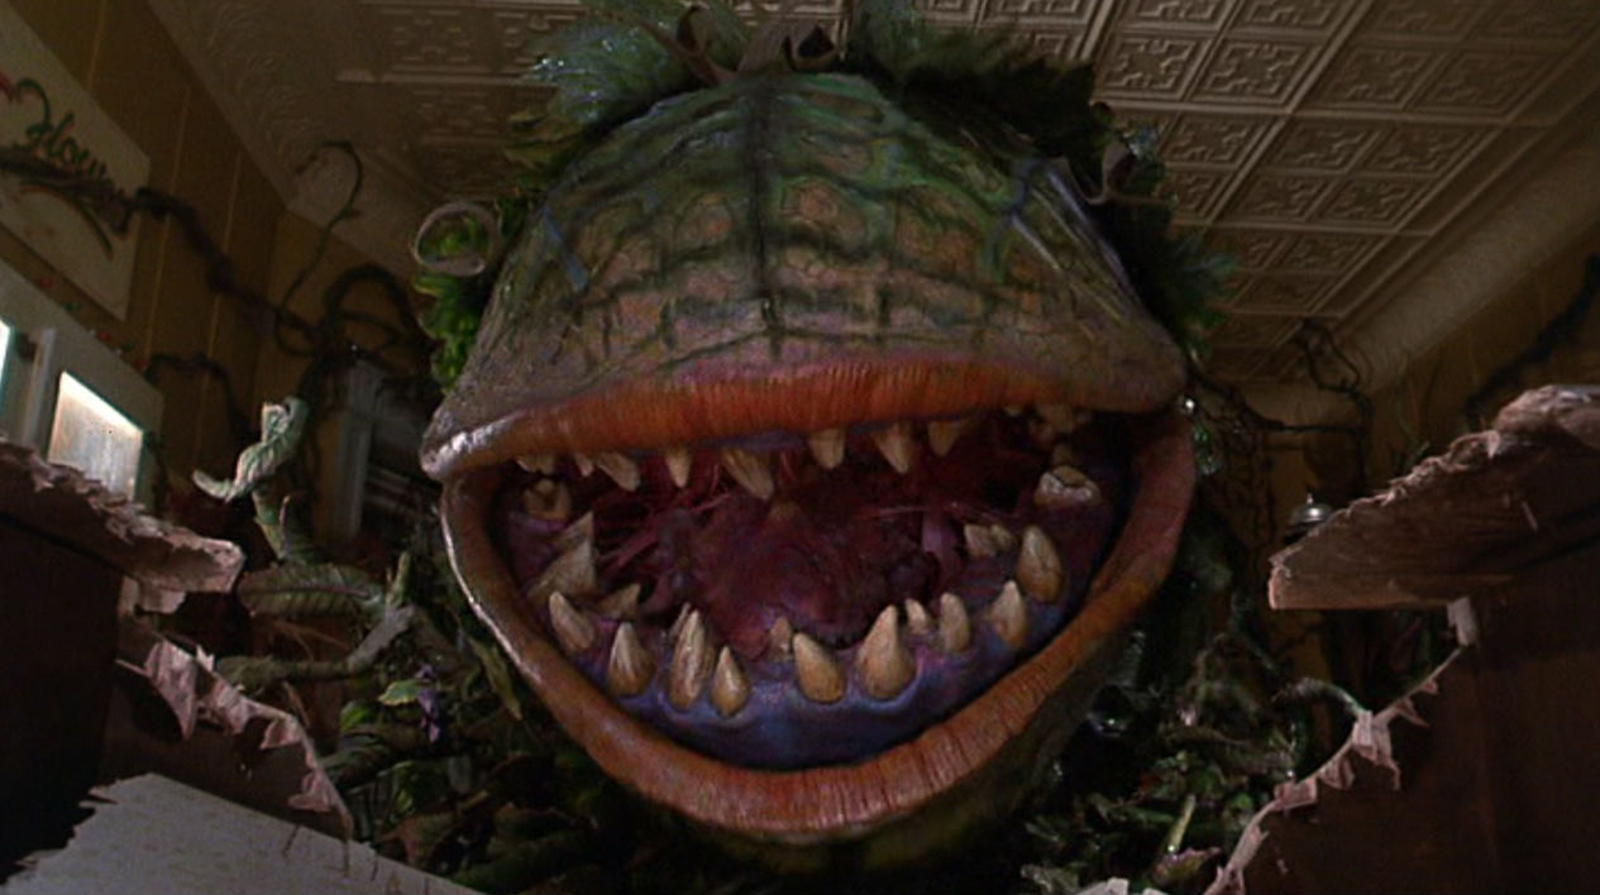 This is a still from The Little Shop of Horrors.